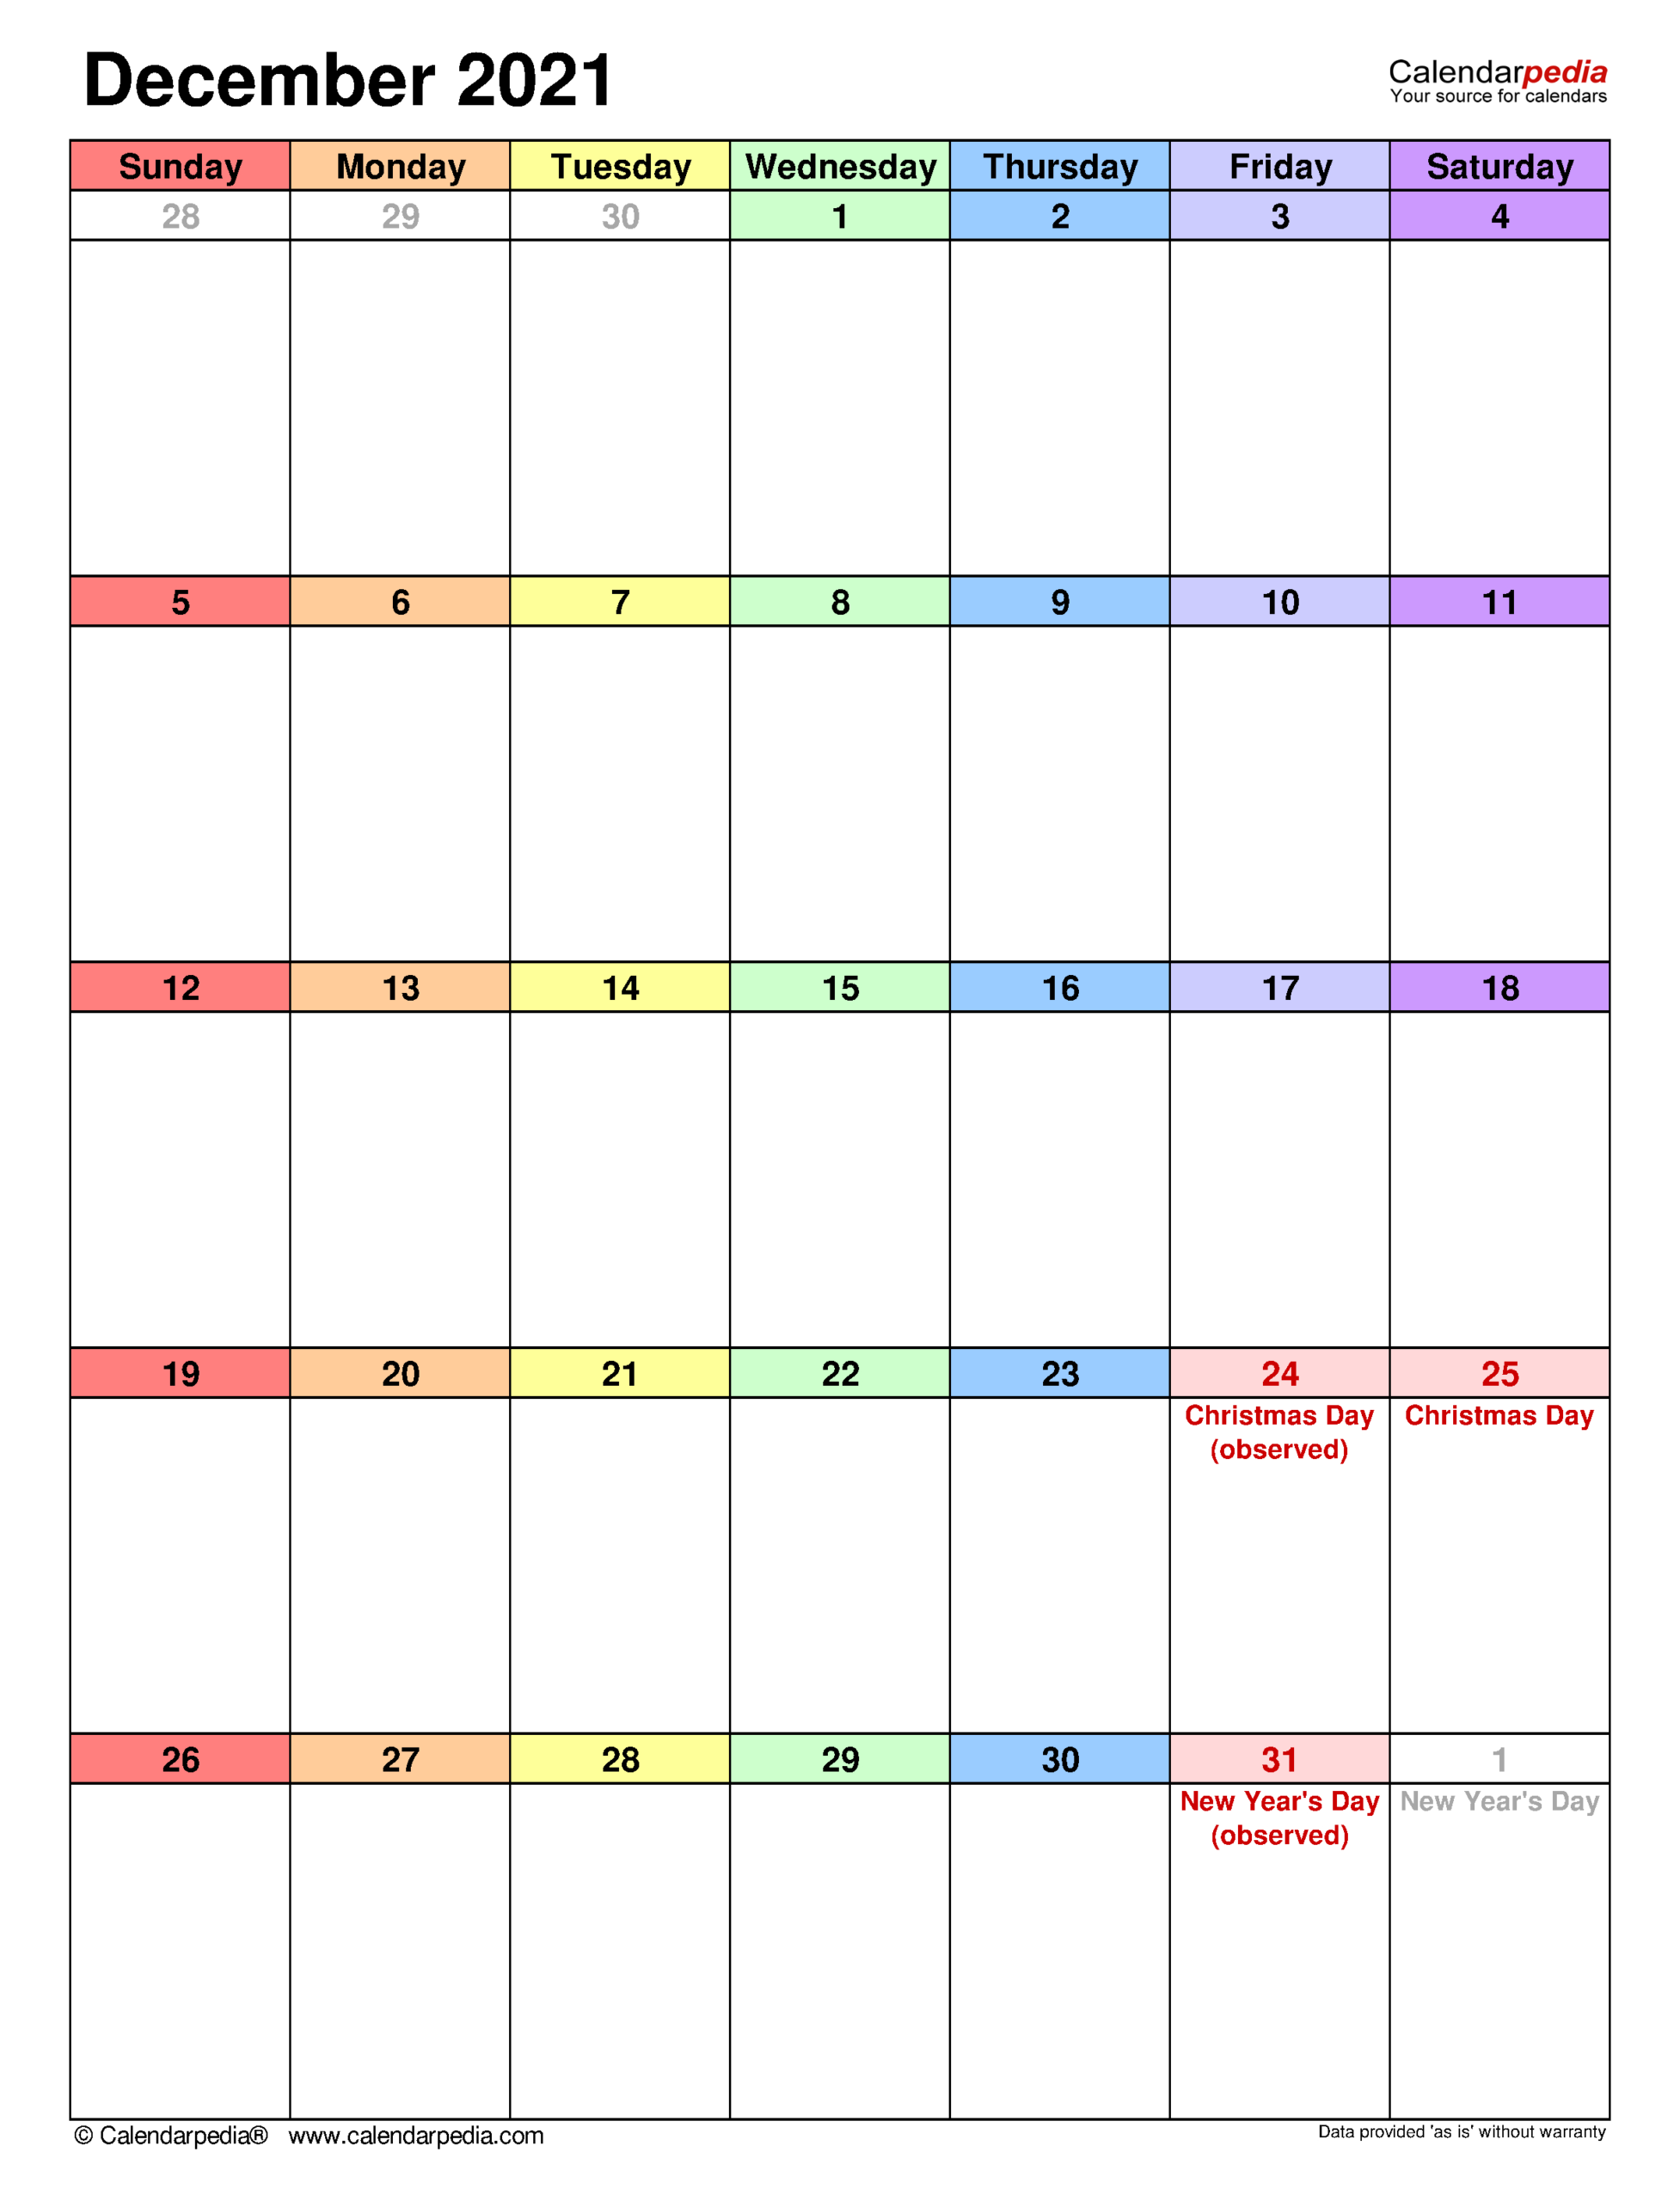 December 2021 Calendar   Templates For Word, Excel And Pdf